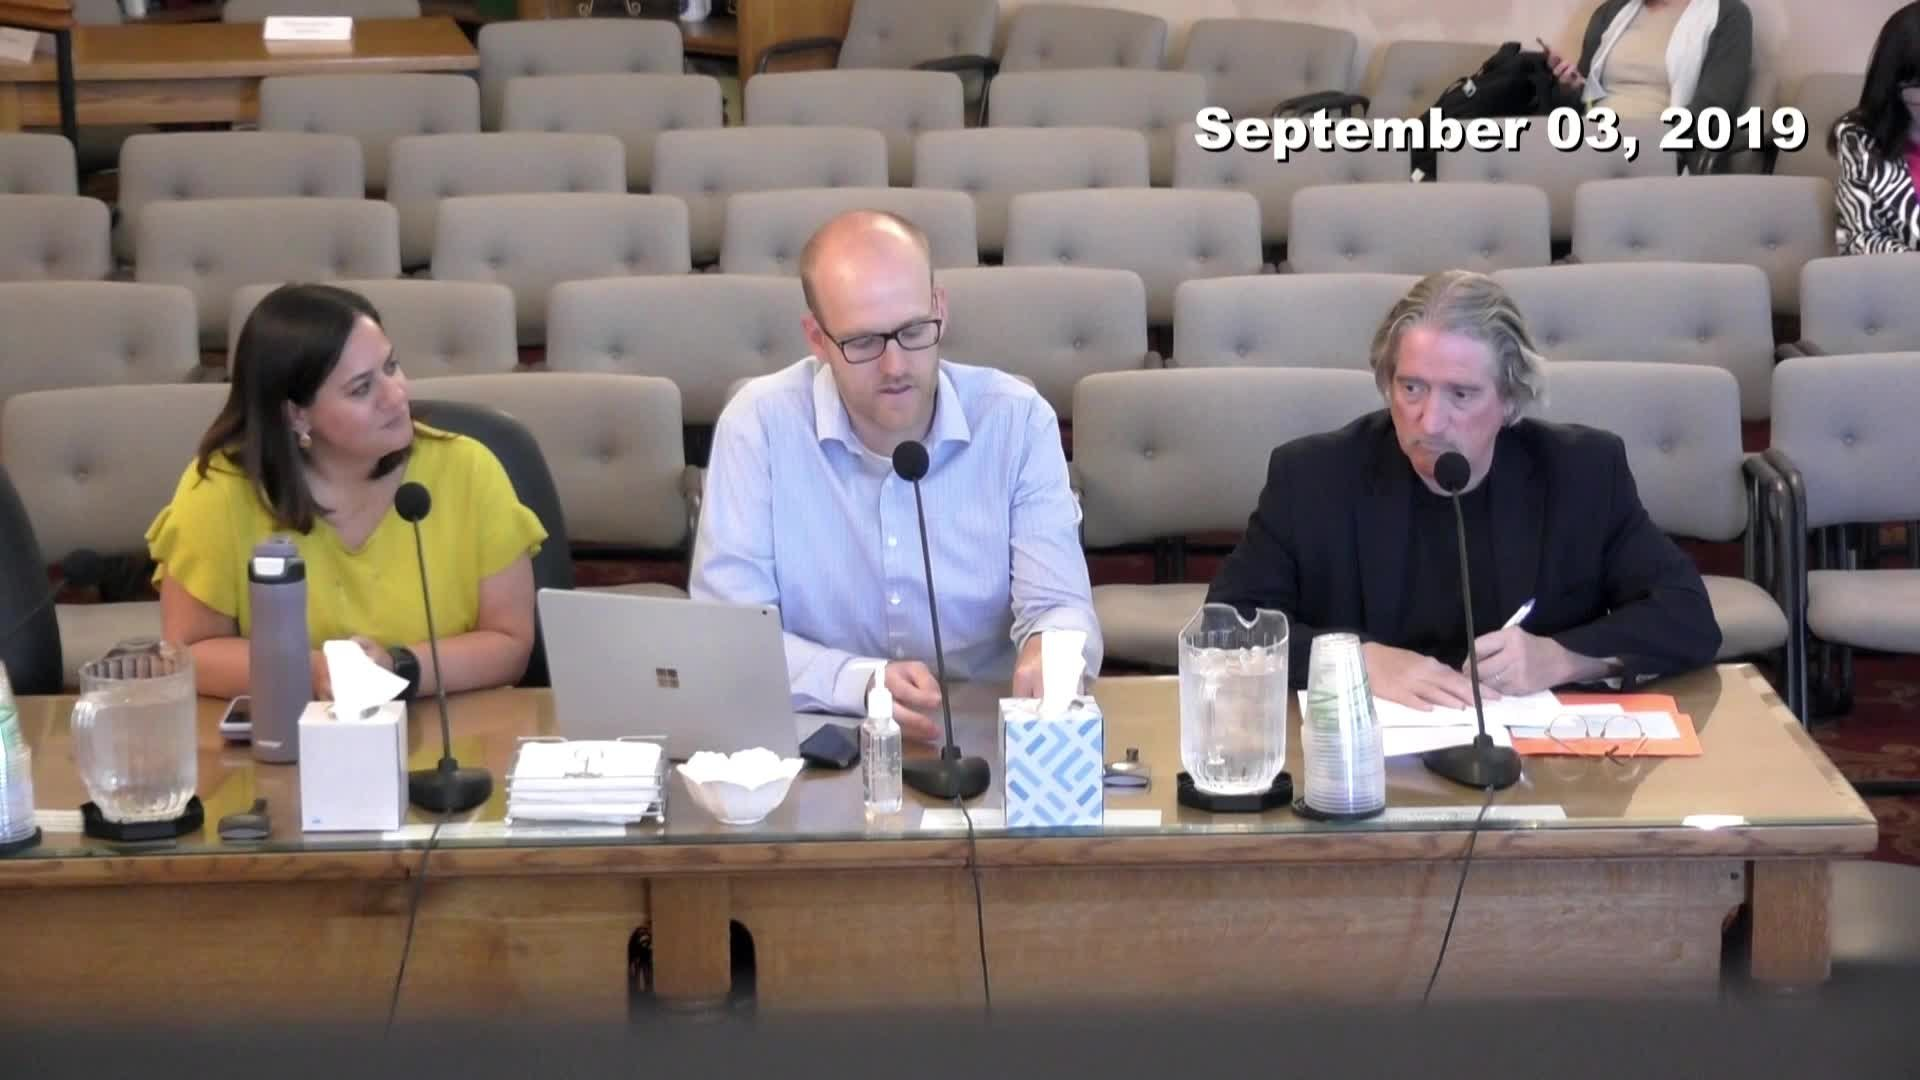 City Council Work Session - 09/03/2019